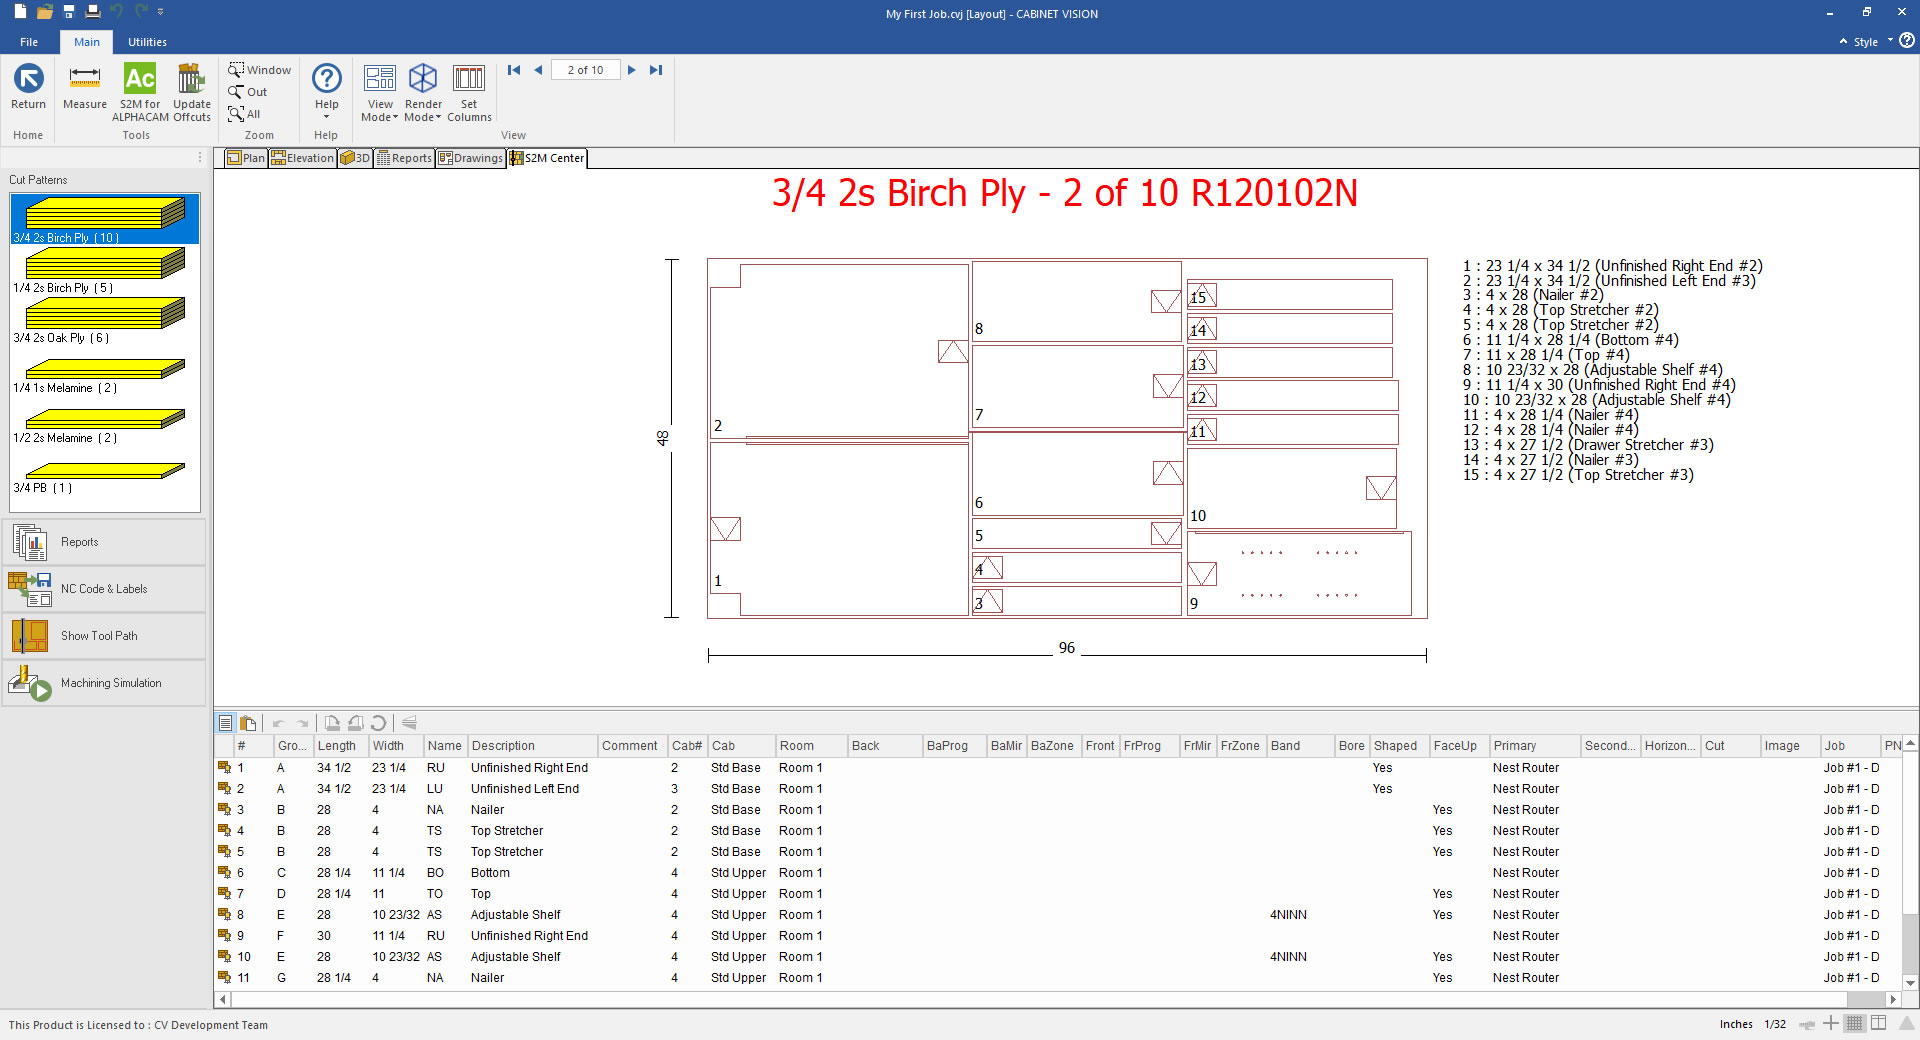 CABINET VISION xMachining Software